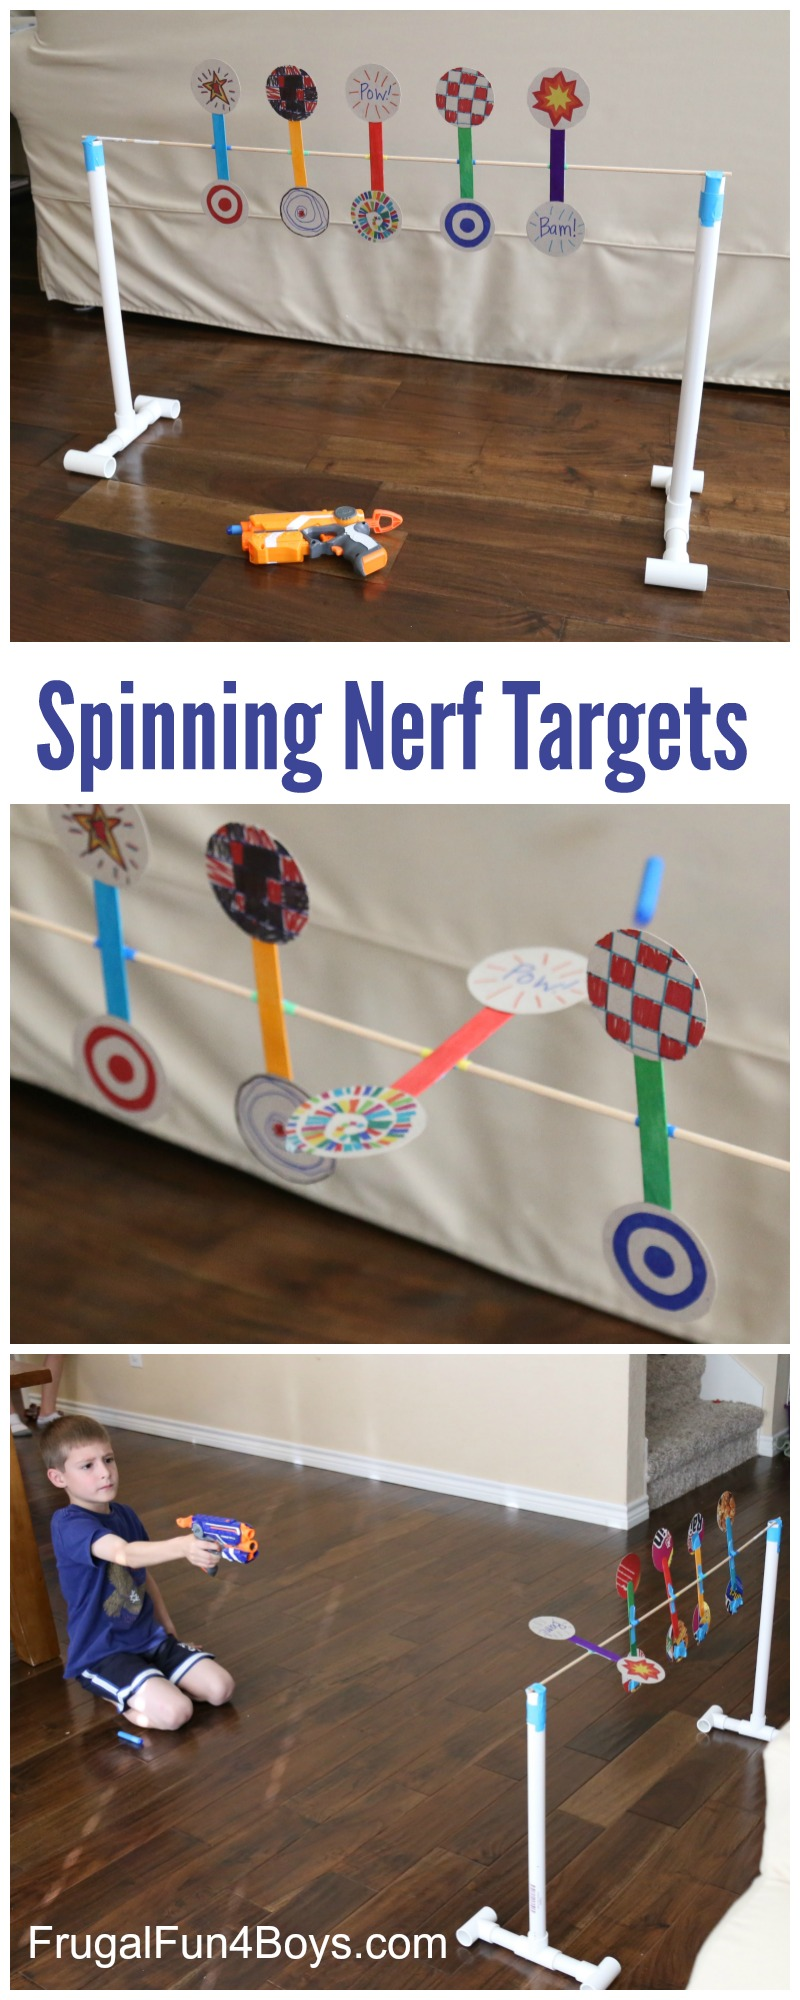 How to Make Spinning Nerf Targets